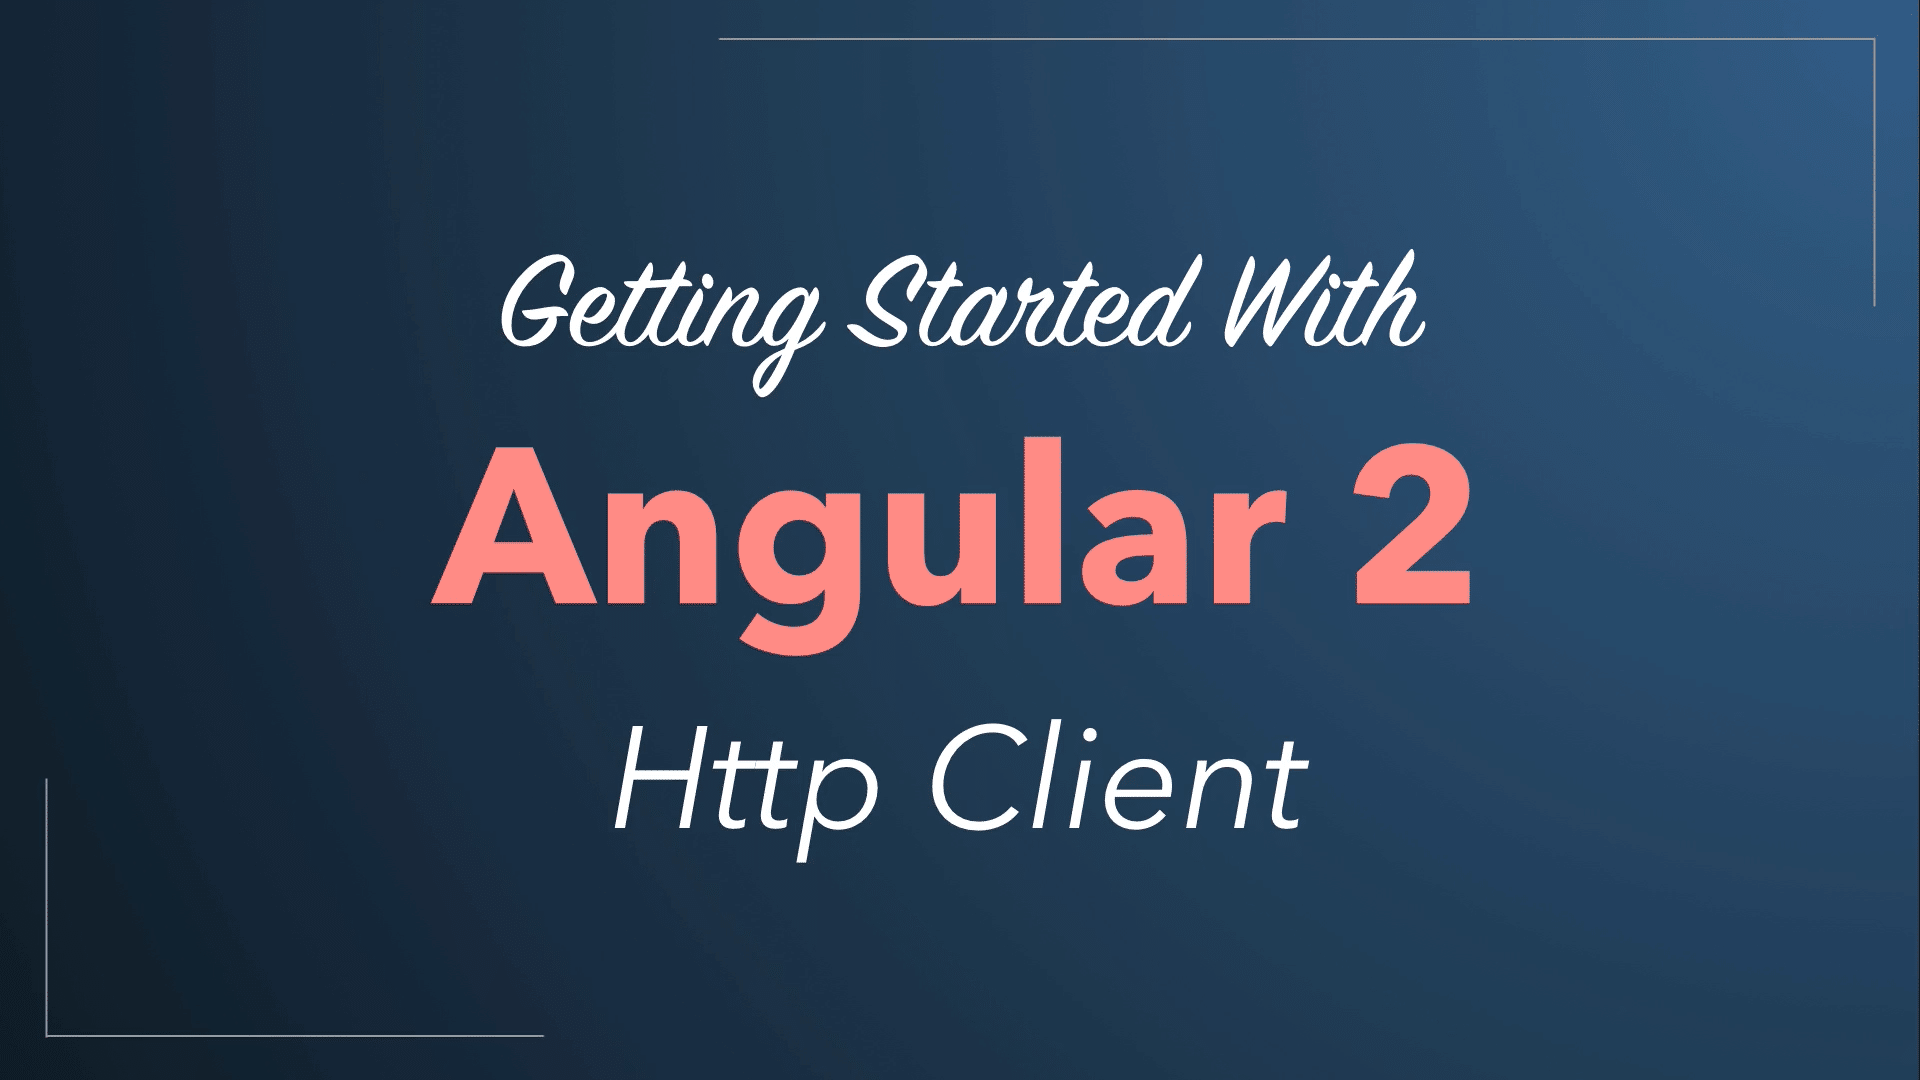 Angular 2 Http Client (Accessing REST Web Services) Quickstart Tutorial 2016